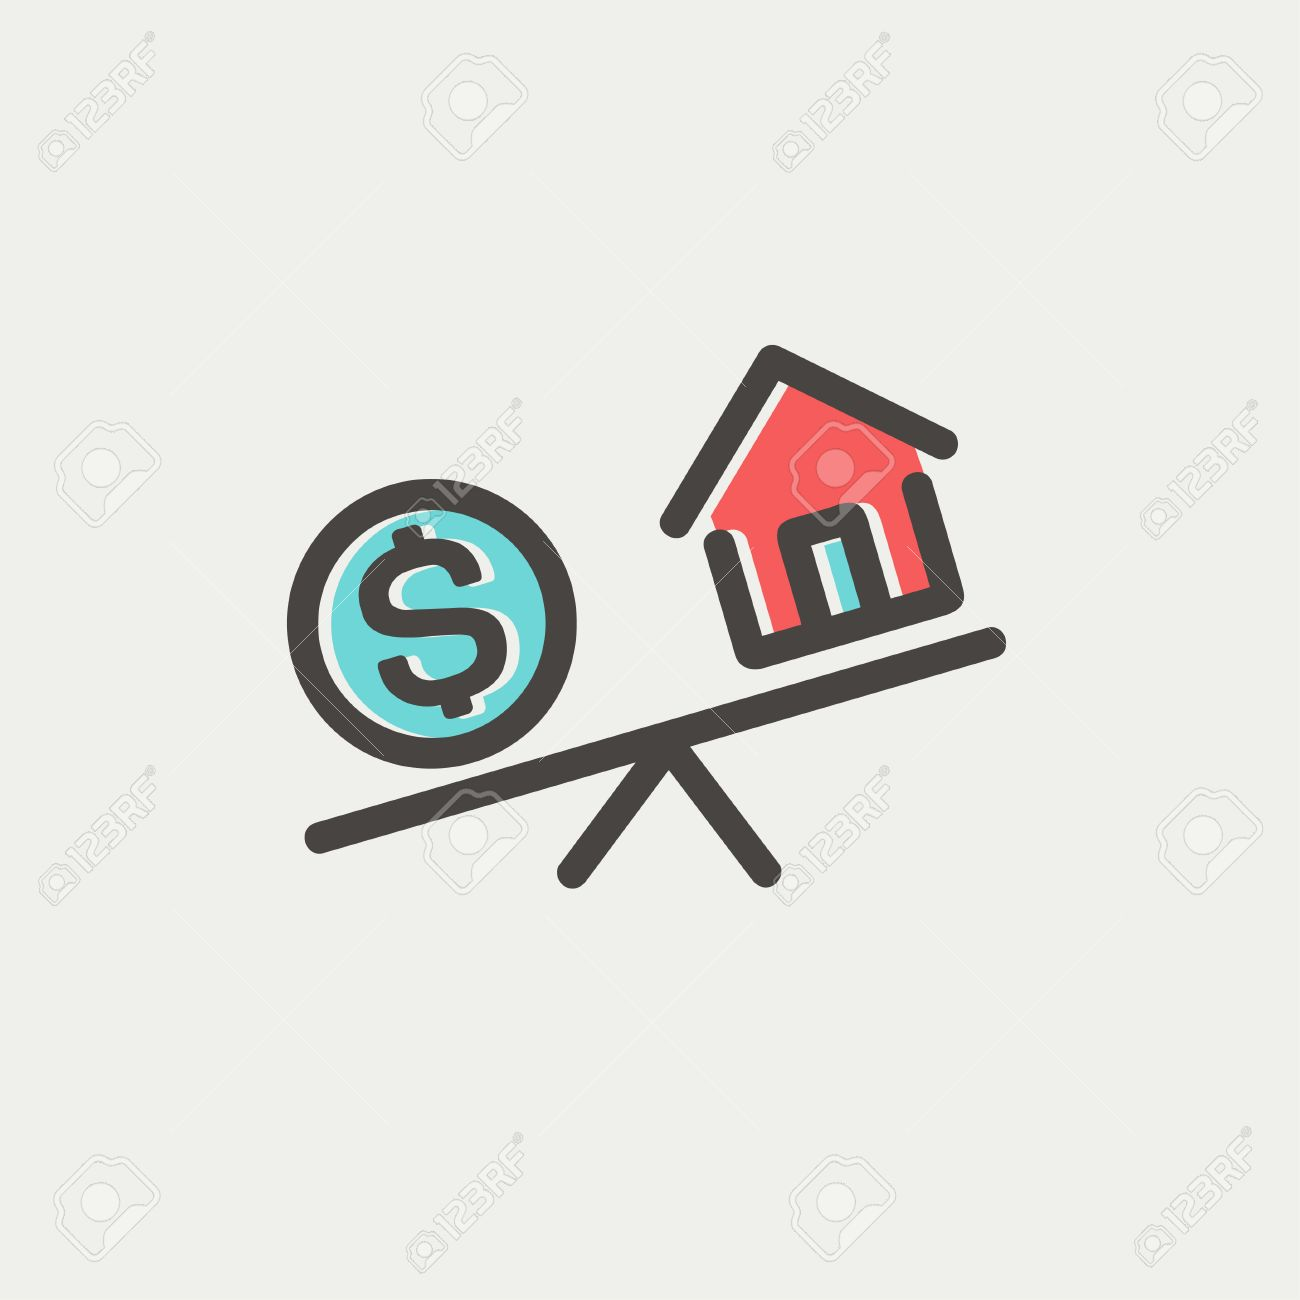 Compare Or Exchange Home To Money Icon Thin Line For Web And ...